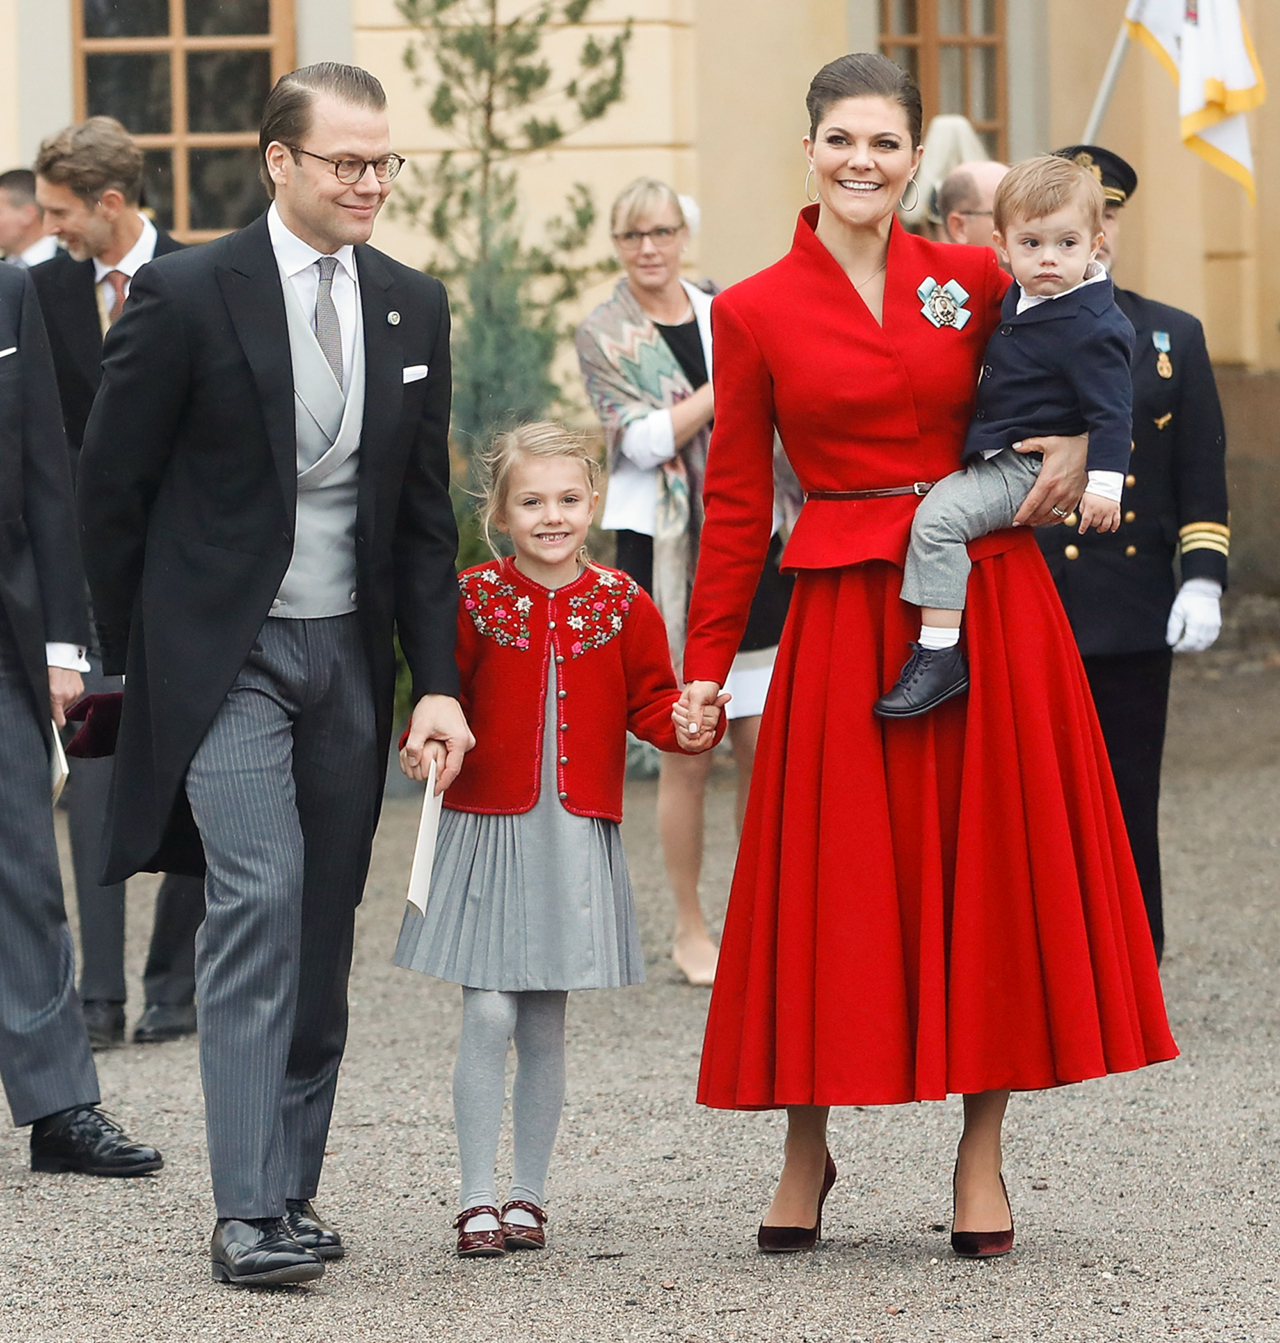 The Swedish Royal Court